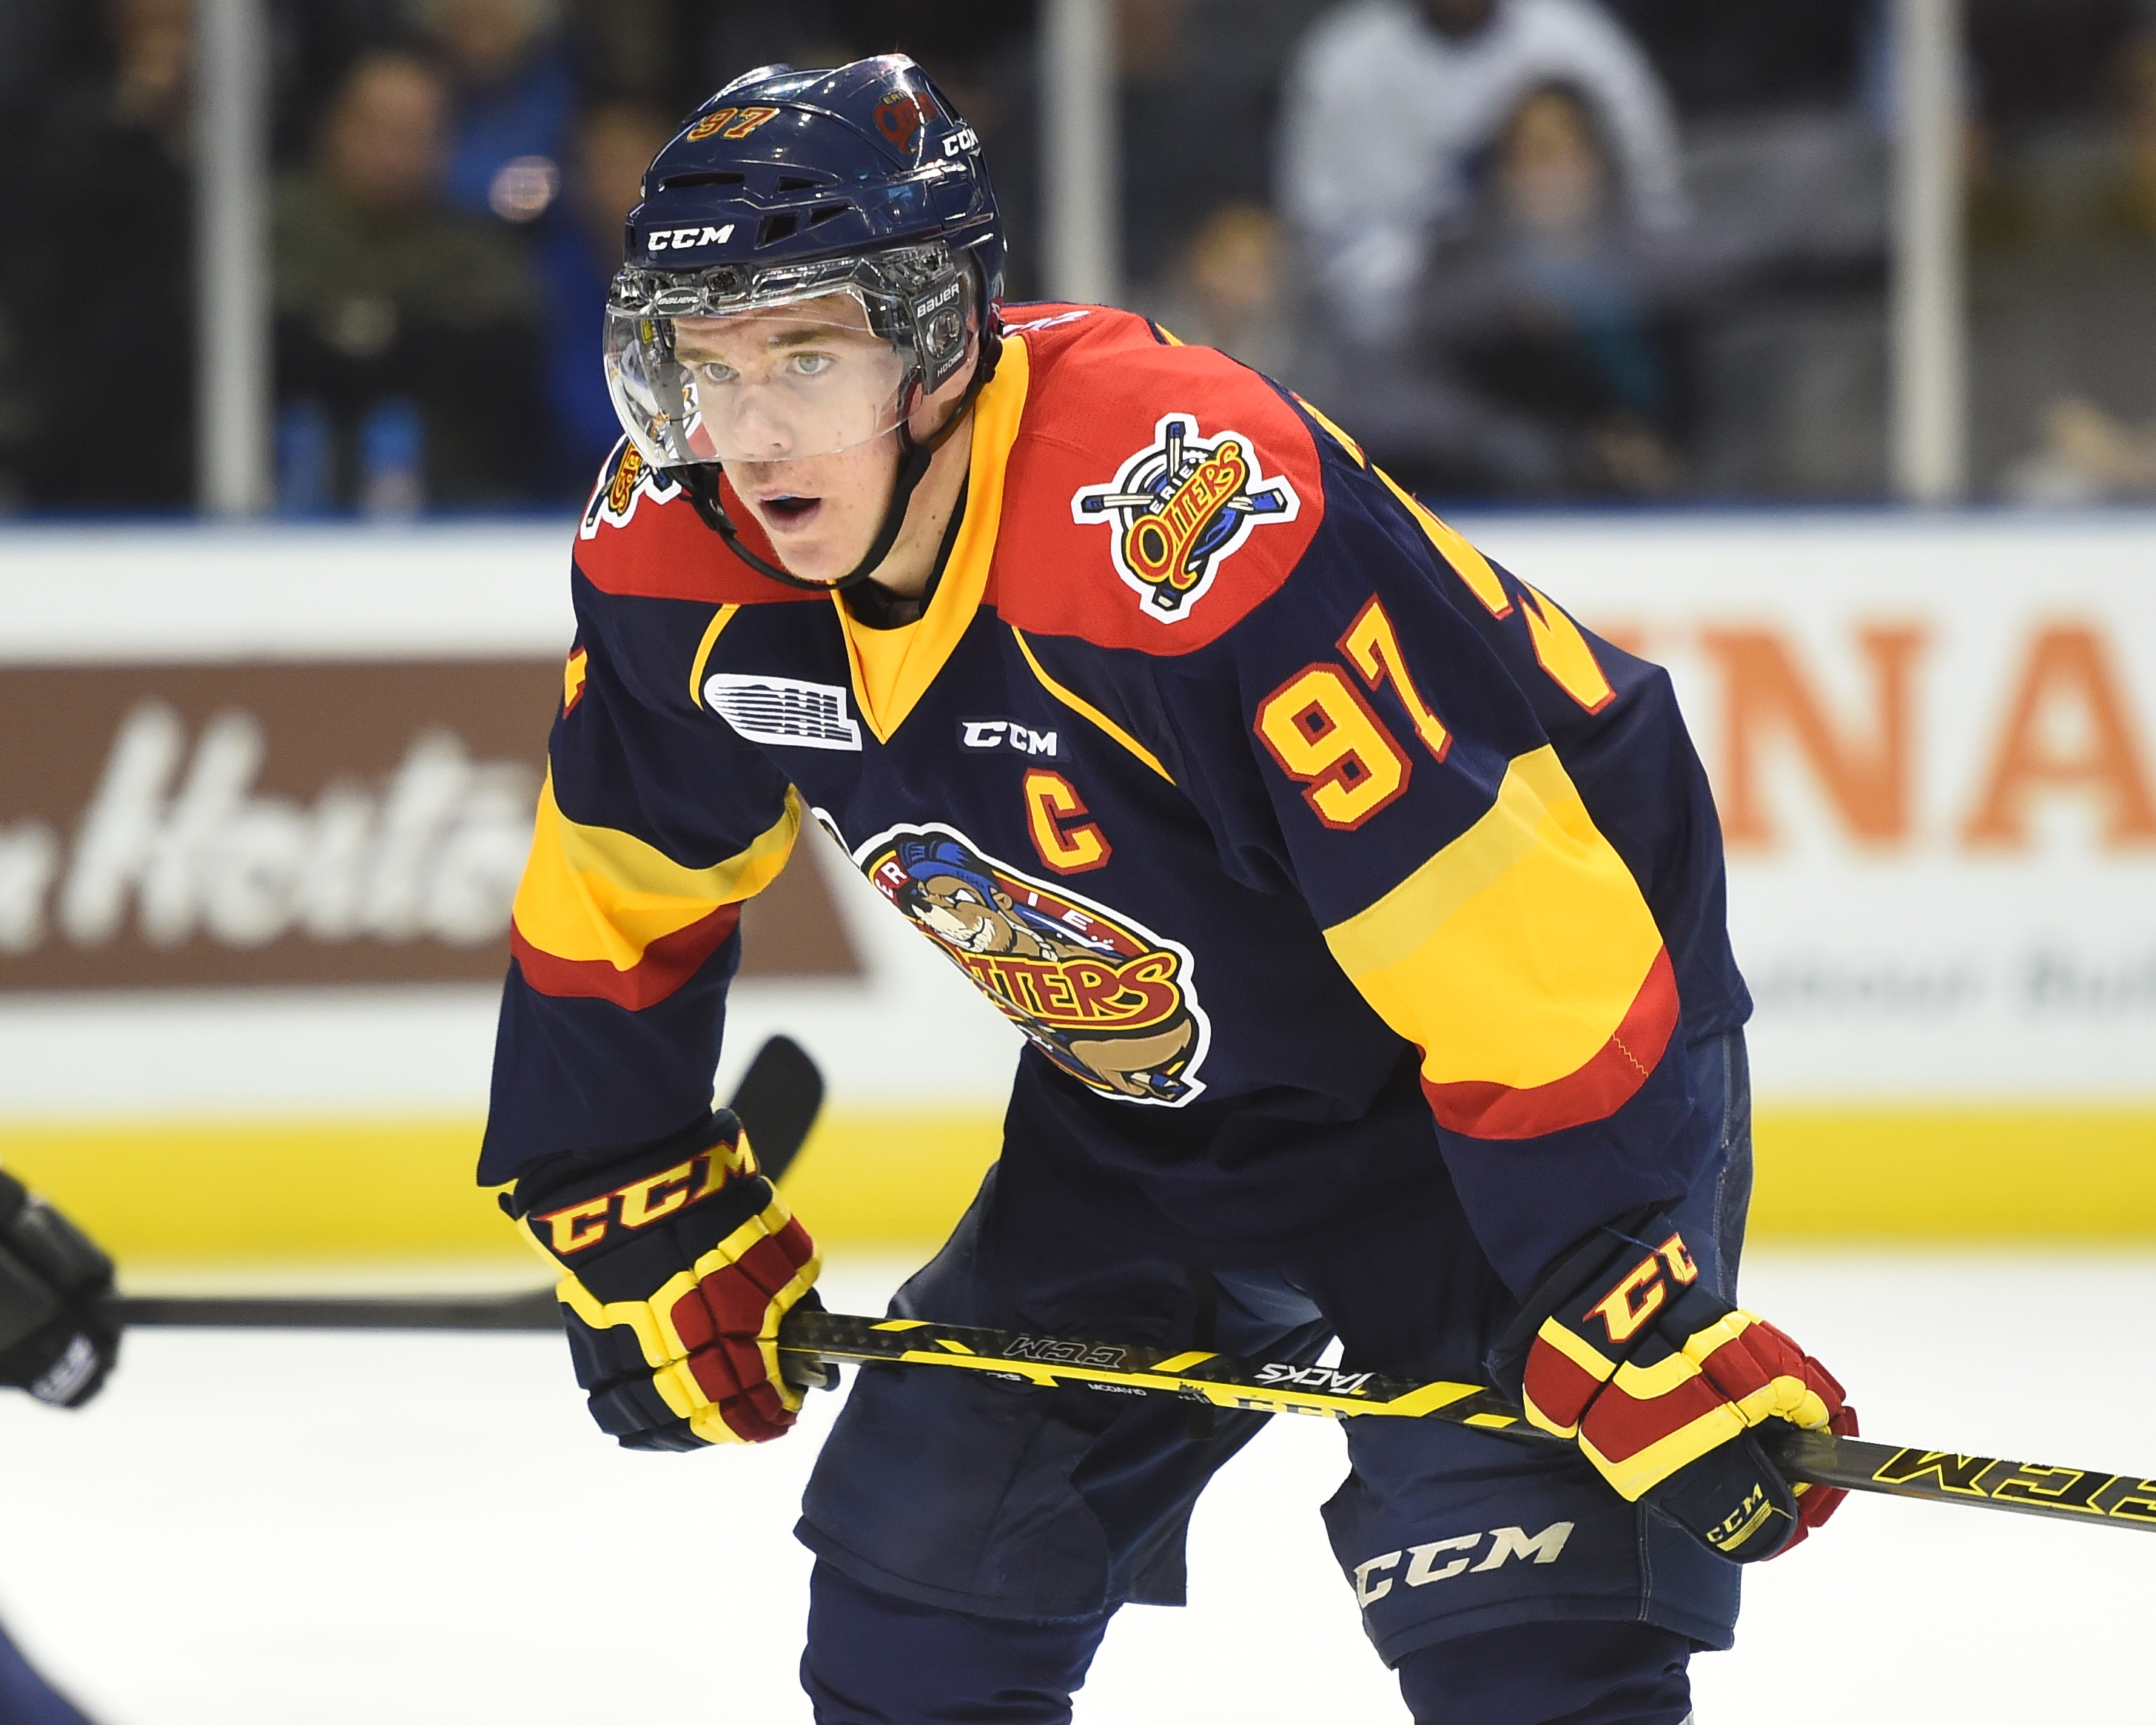 Connor Mcdavid Nhl Draft Lottery   Stock Photos Images HD 2913x2331